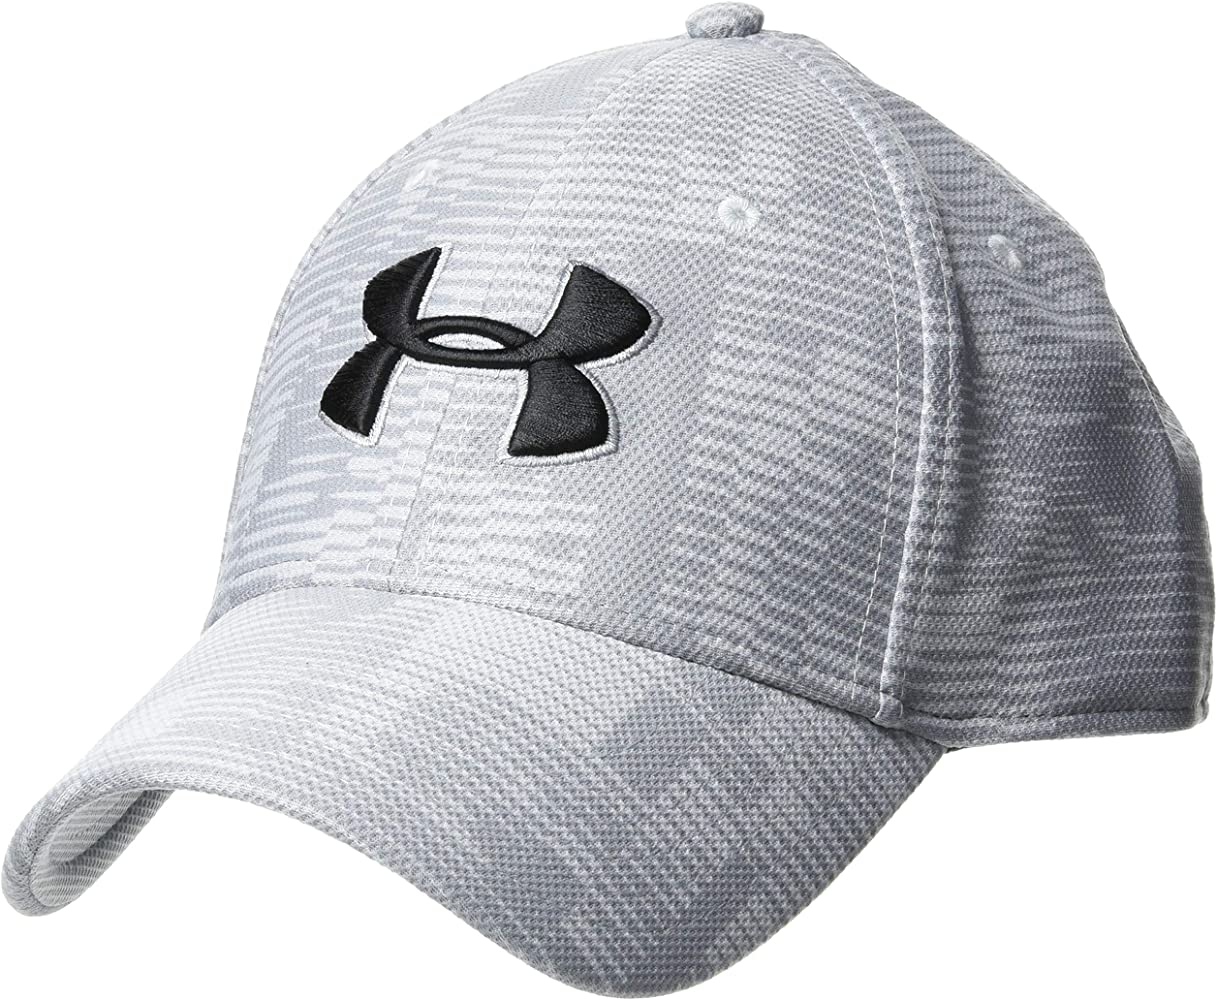 Under Armour Mens Printed Blitzing 3.0 Gorra, Hombre: Amazon.es ...